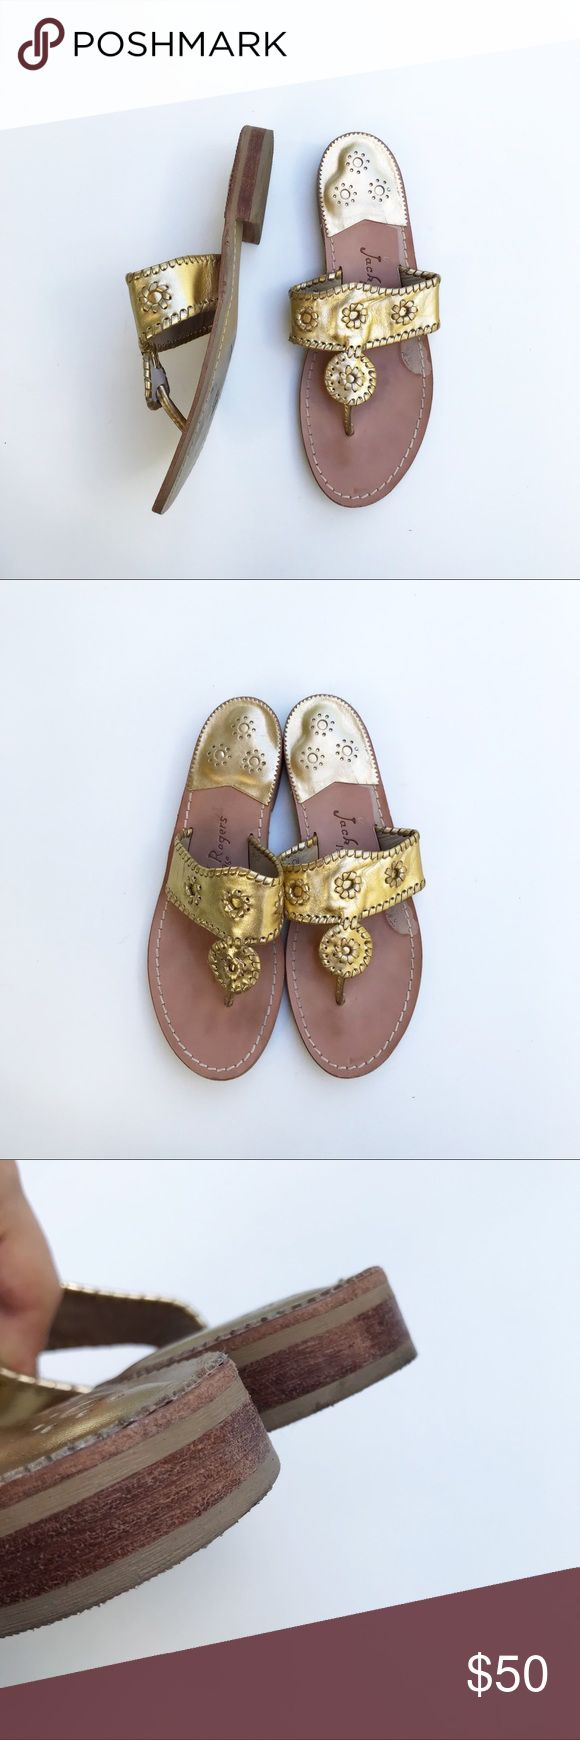 Jack Rogers Gold Palm Beach Whipstitched Sandals ⠀ ‣‣❊‣‣‣‣❊‣‣ NO TRADES ‣‣❊‣‣‣‣❊‣‣ ⠀ ☾Jack Rogers palm beach Whipstitched Navajo Sandals in gold. Tonal flowers and whipstitched trim detail a hand-laced style, crafted from soft leather. Subtle scuffs throughout, minimal wear. Retail $117. Jack Rogers Shoes Sandals